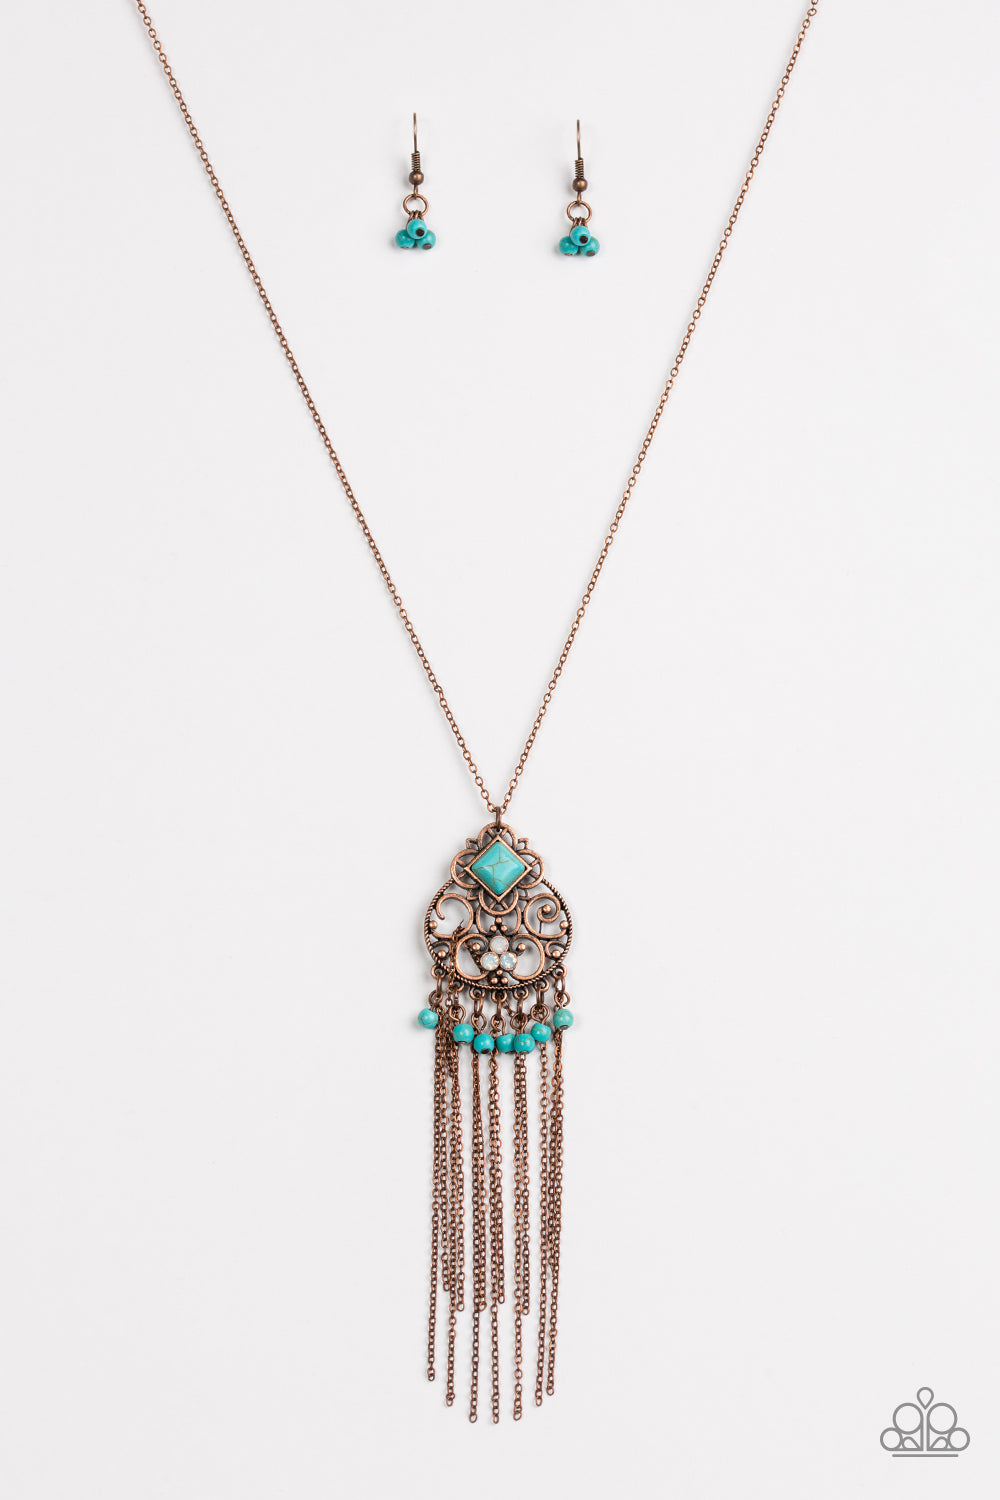 Whimsically Western - Copper Necklace